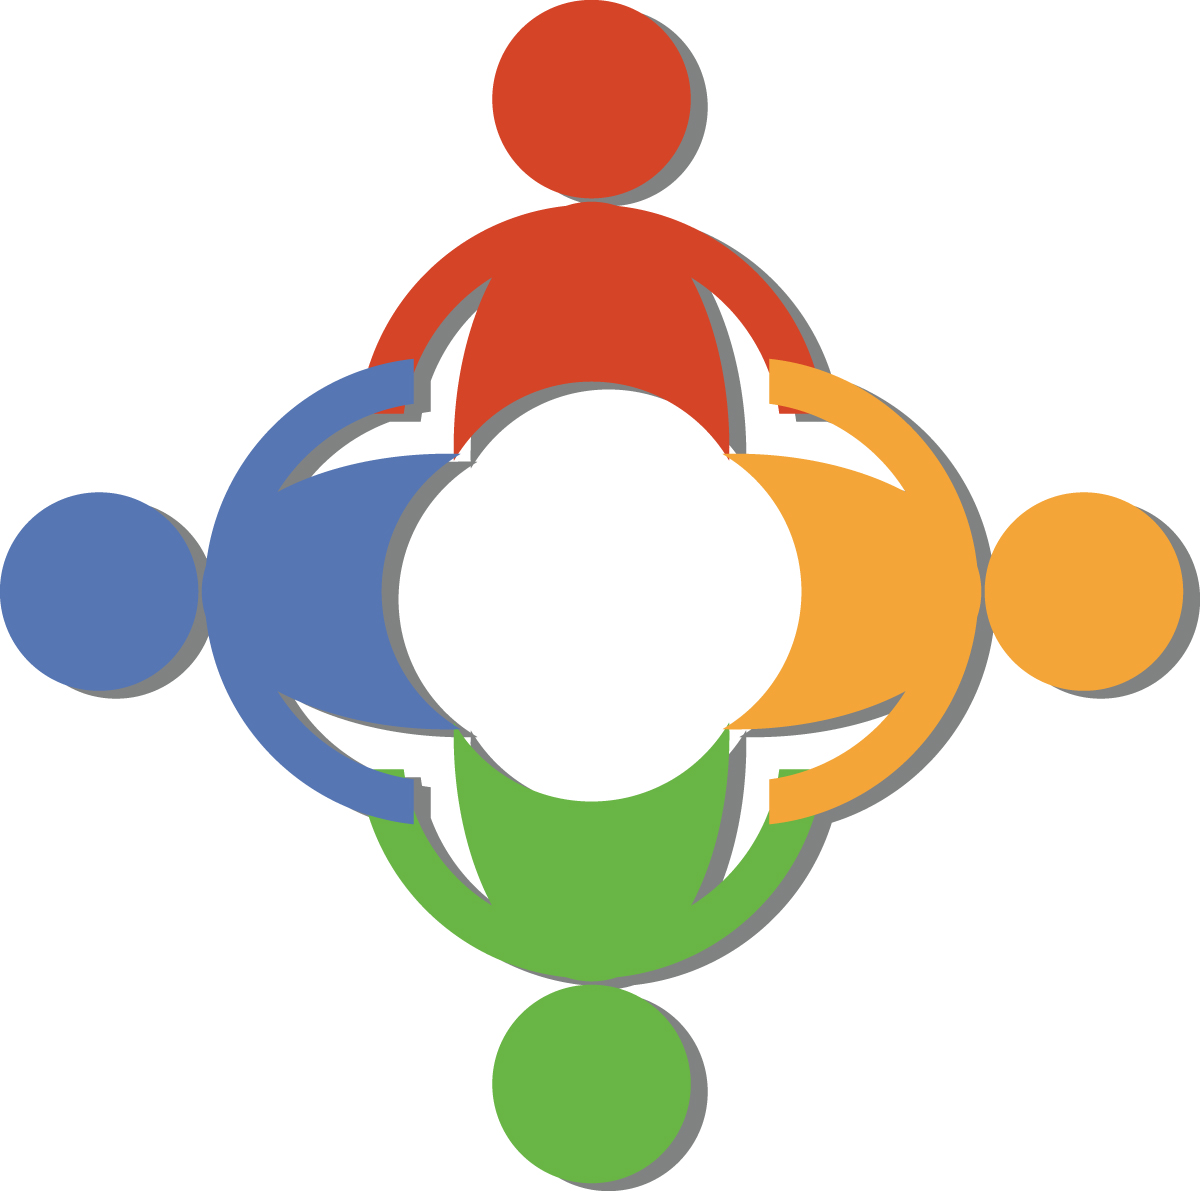 1200x1191 Teamwork Clip Art Of A Circle Of Diverse People Holding Hands